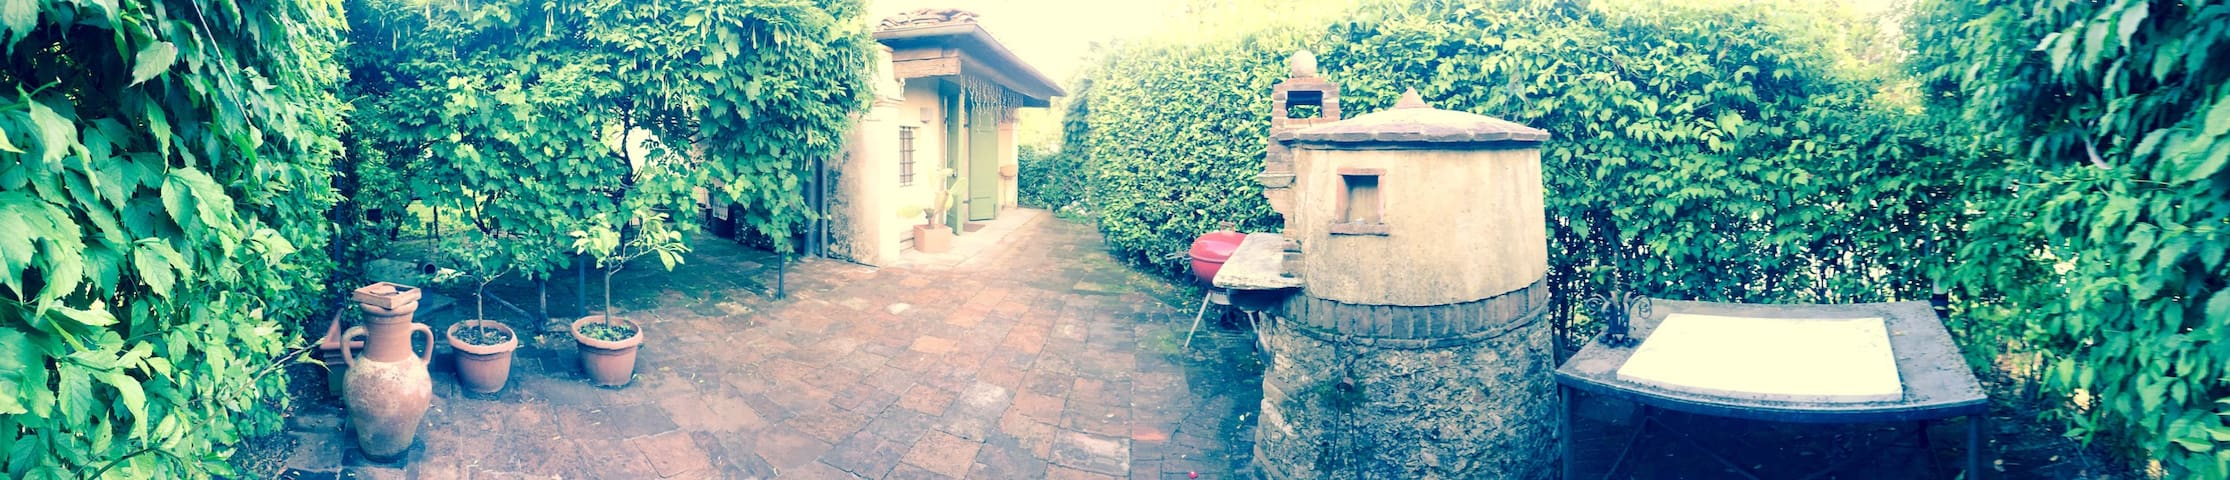 chiesina holiday home - Lucca